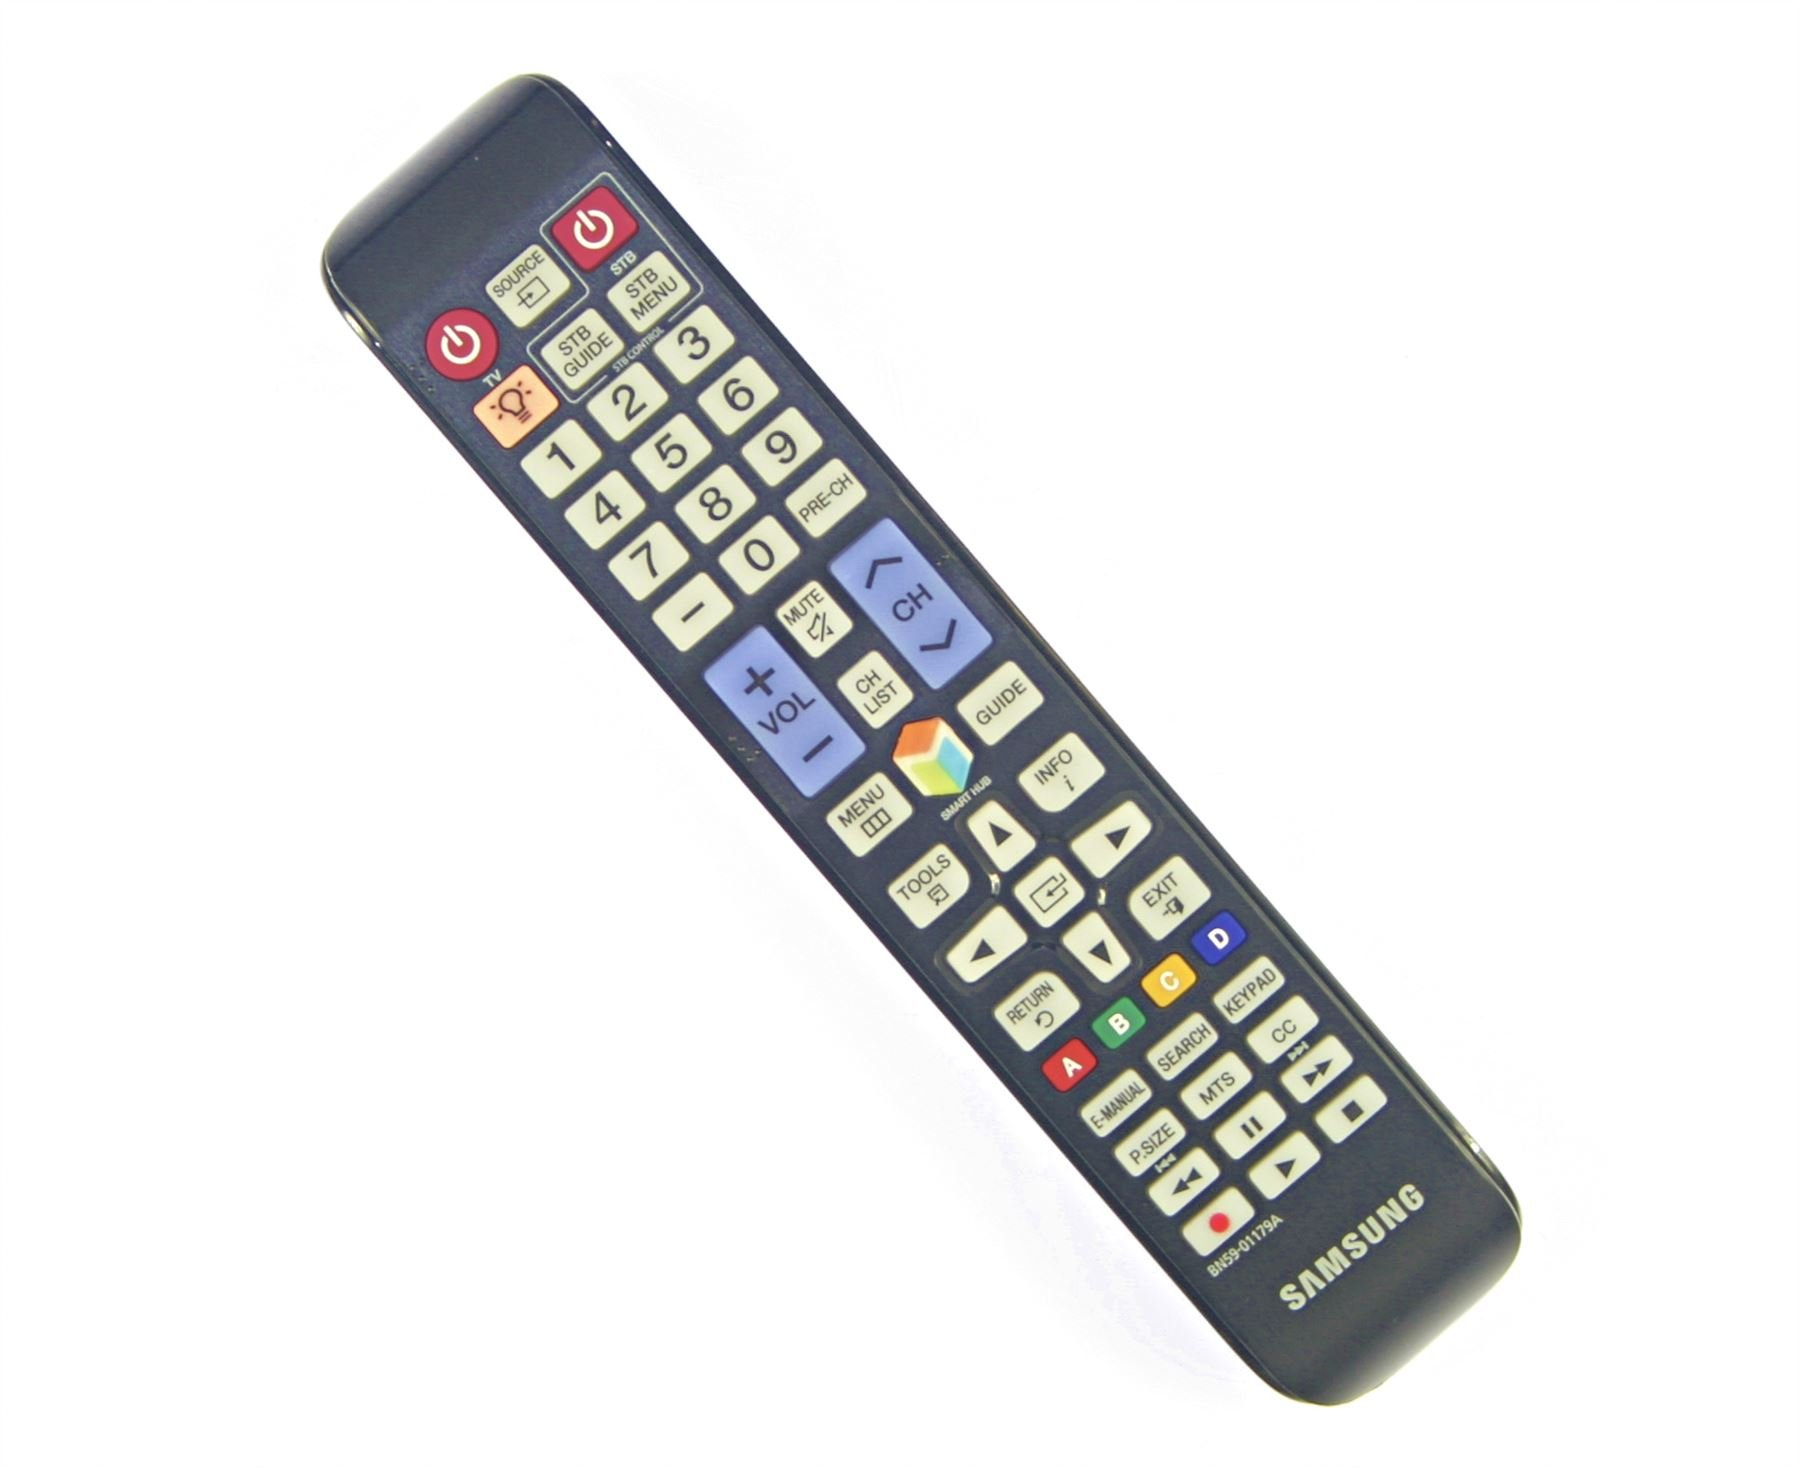 Samsung Bn59-01179a Smart LED Hdtv Remote Control by Samsung by Samsung